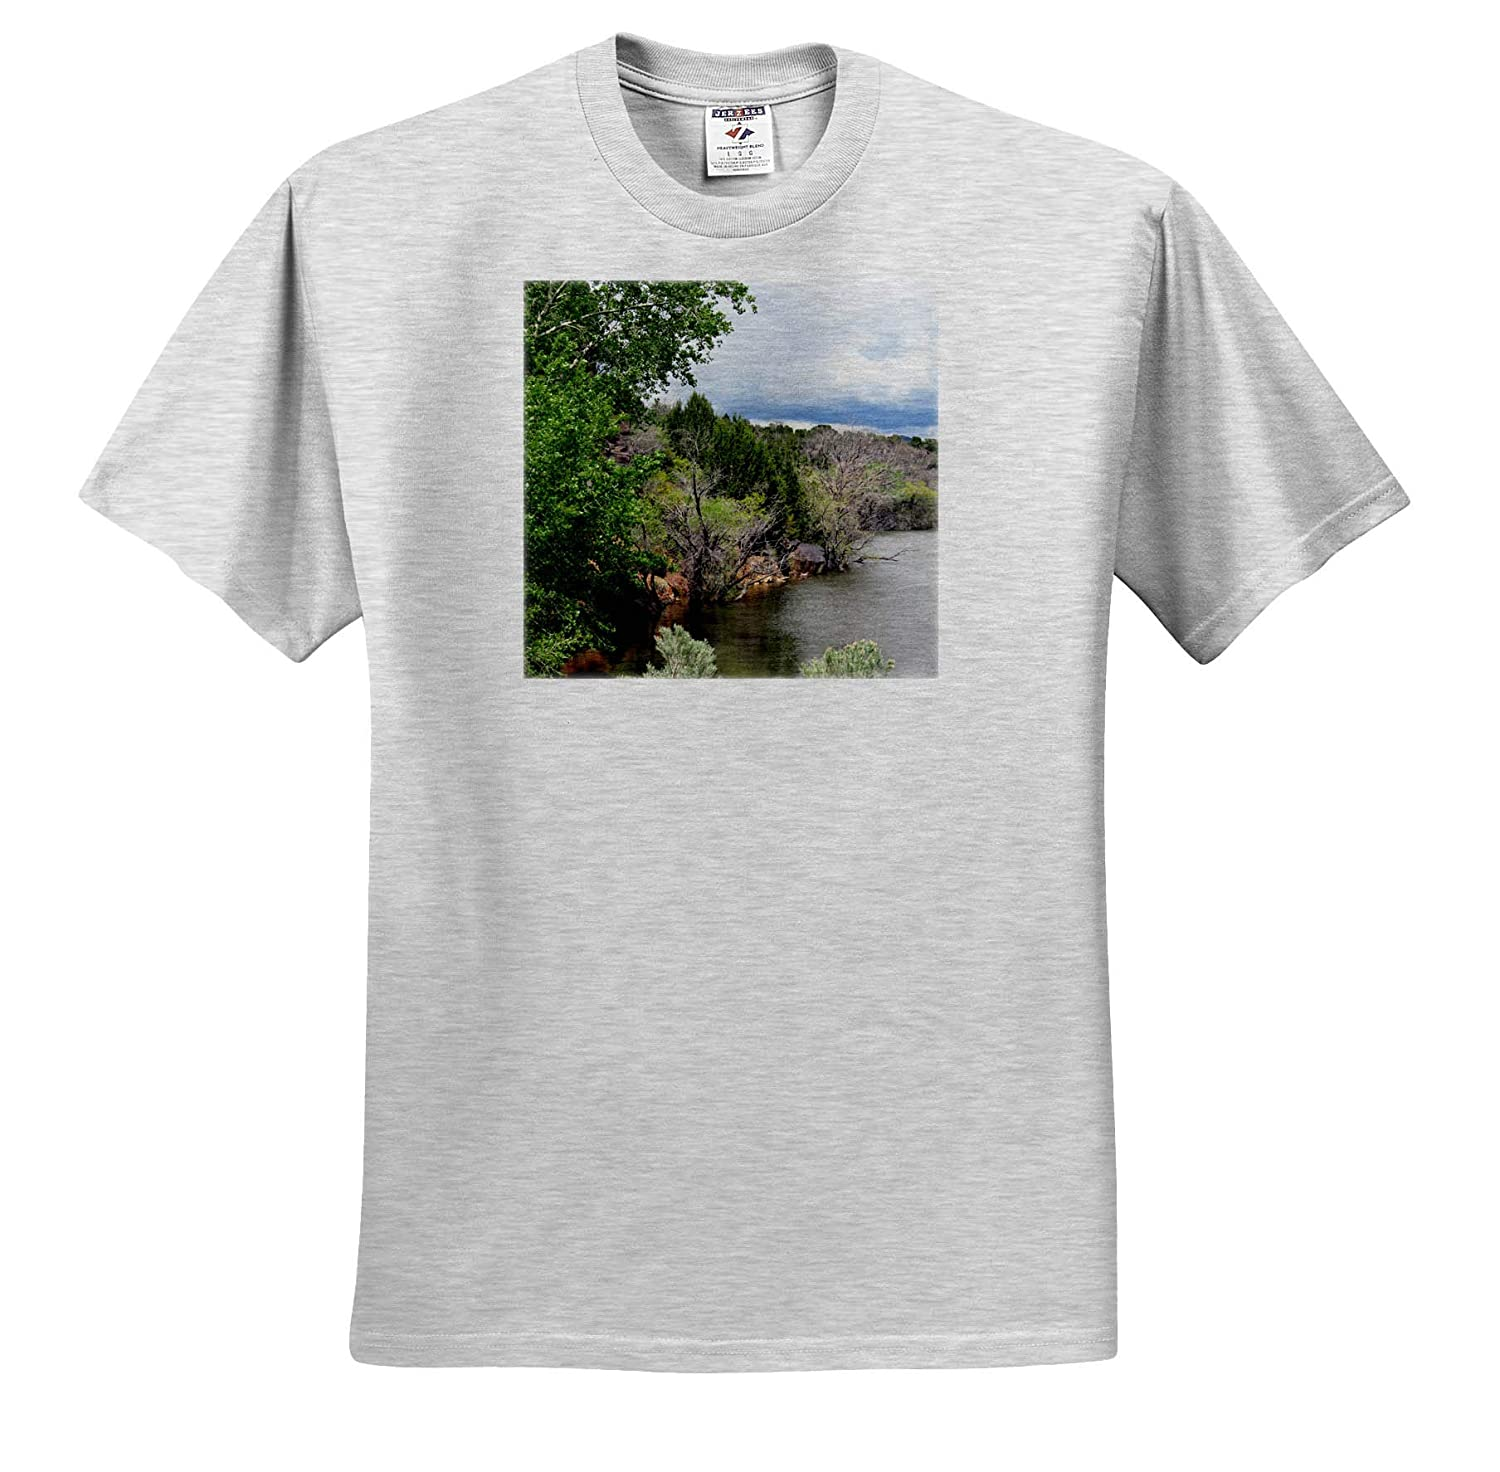 3dRose Jos Fauxtographee- Baker Dam Adult T-Shirt XL ts/_318998 The Edge of Baker Dam with The Trees and Brush